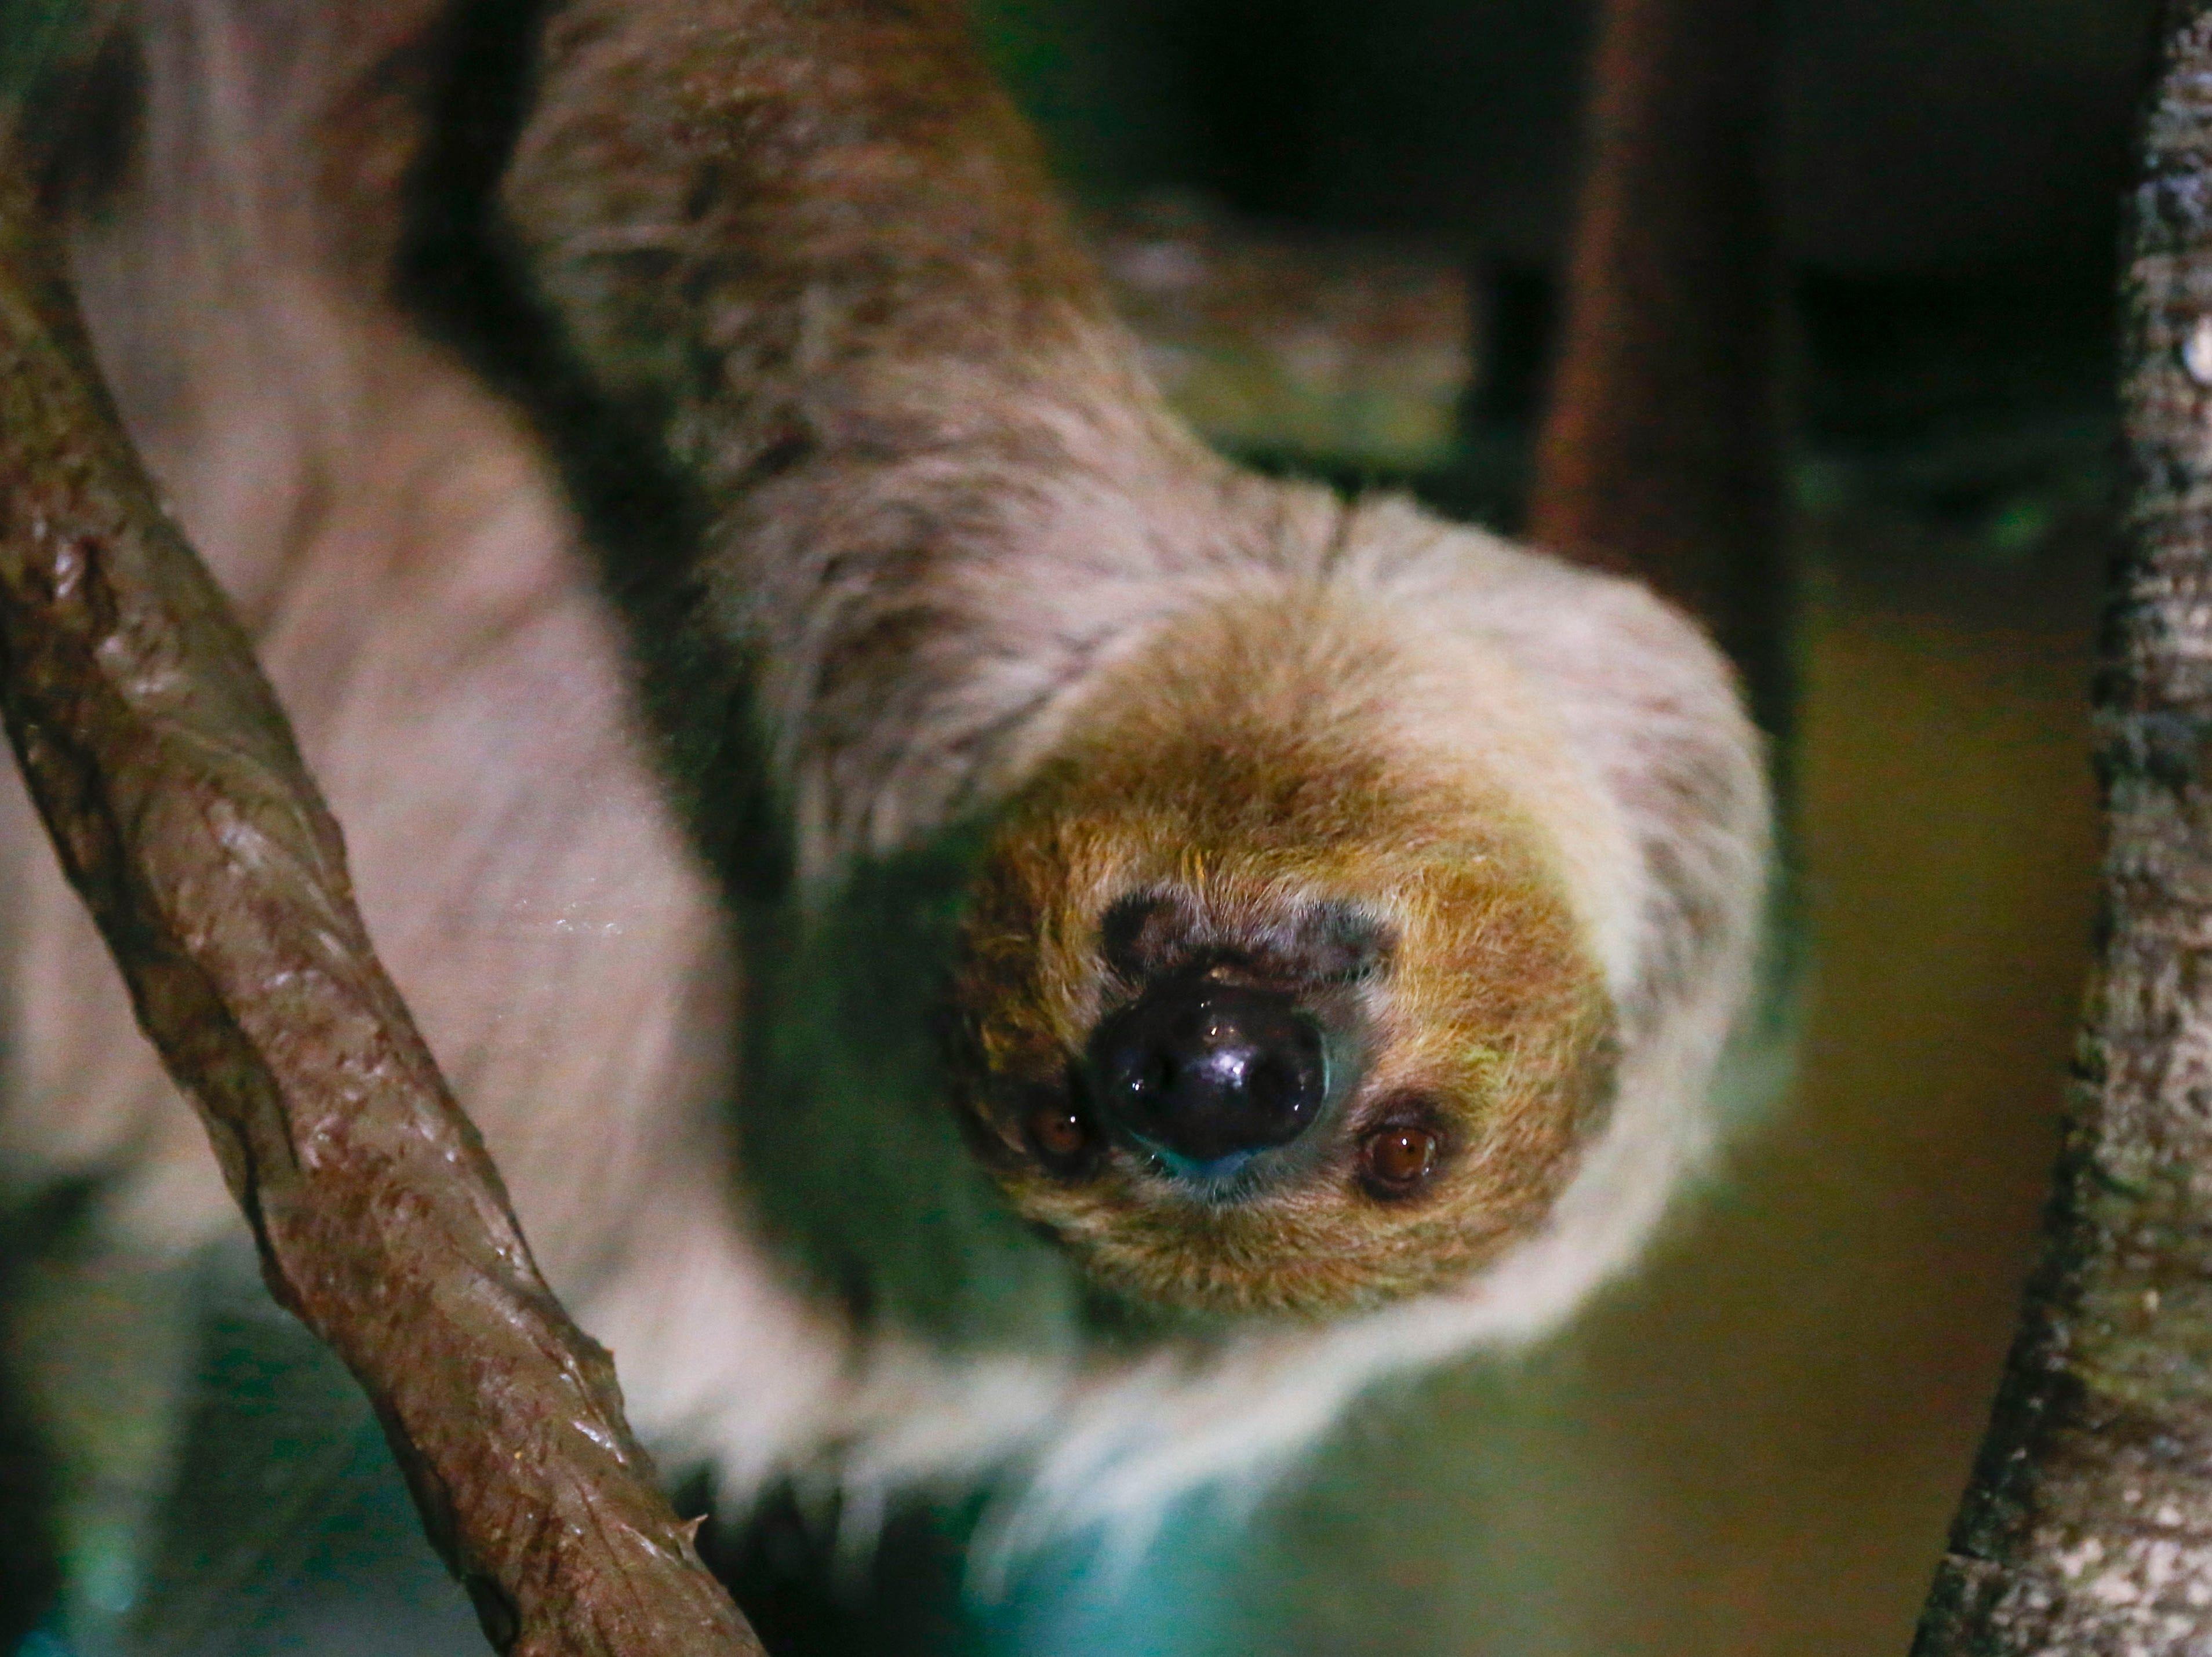 Wonders of Wildlife announced the addition of a Linnaeus's two-toed sloth on Monday, Feb. 25, 2019.